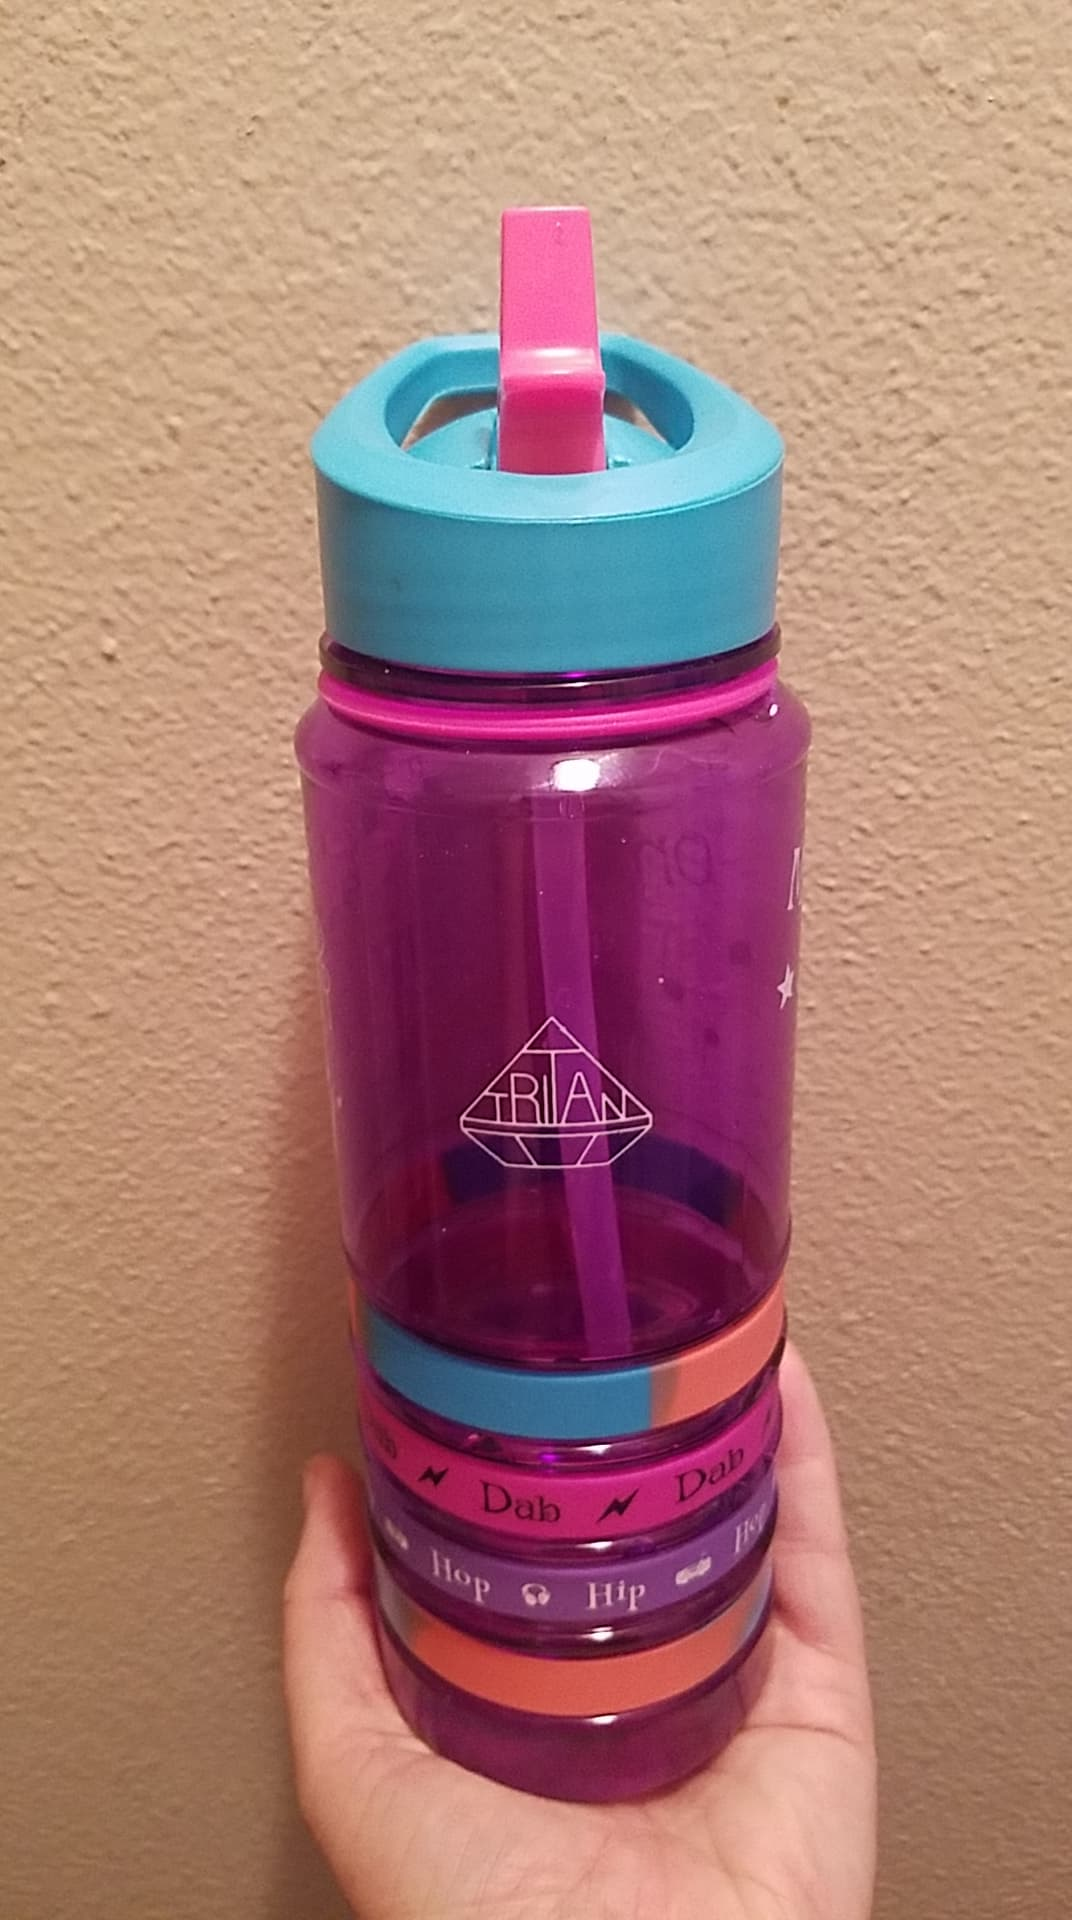 Love the cute Design and Bottle works Perfect